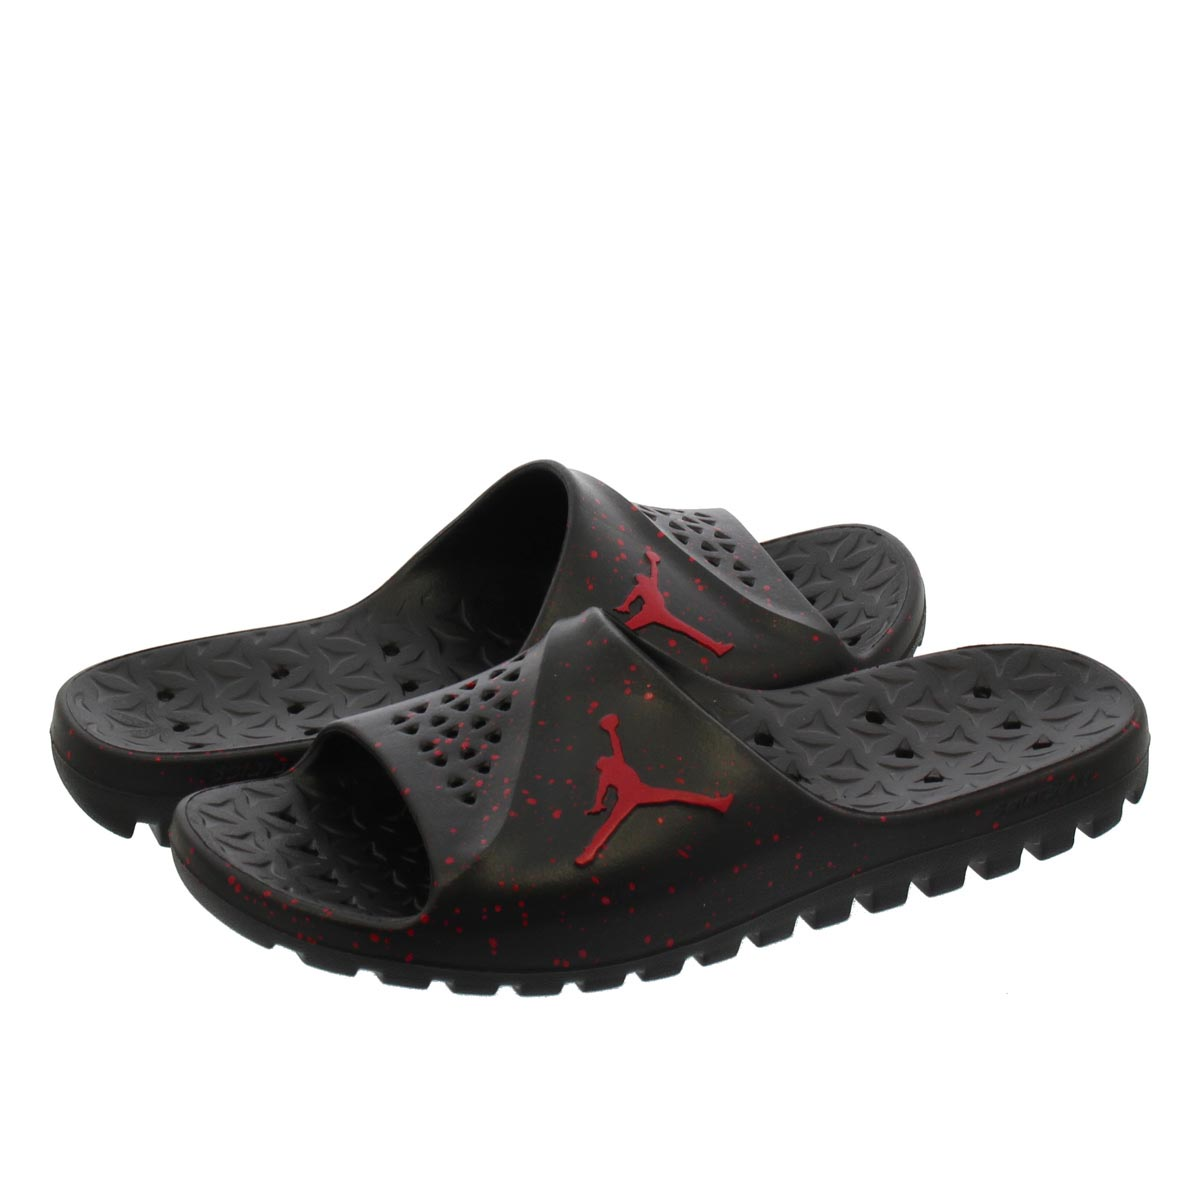 3bc6ae87018 LOWTEX BIG-SMALL SHOP  NIKE JORDAN SUPER.FLY TEAM SLIDE Nike Jordan ...